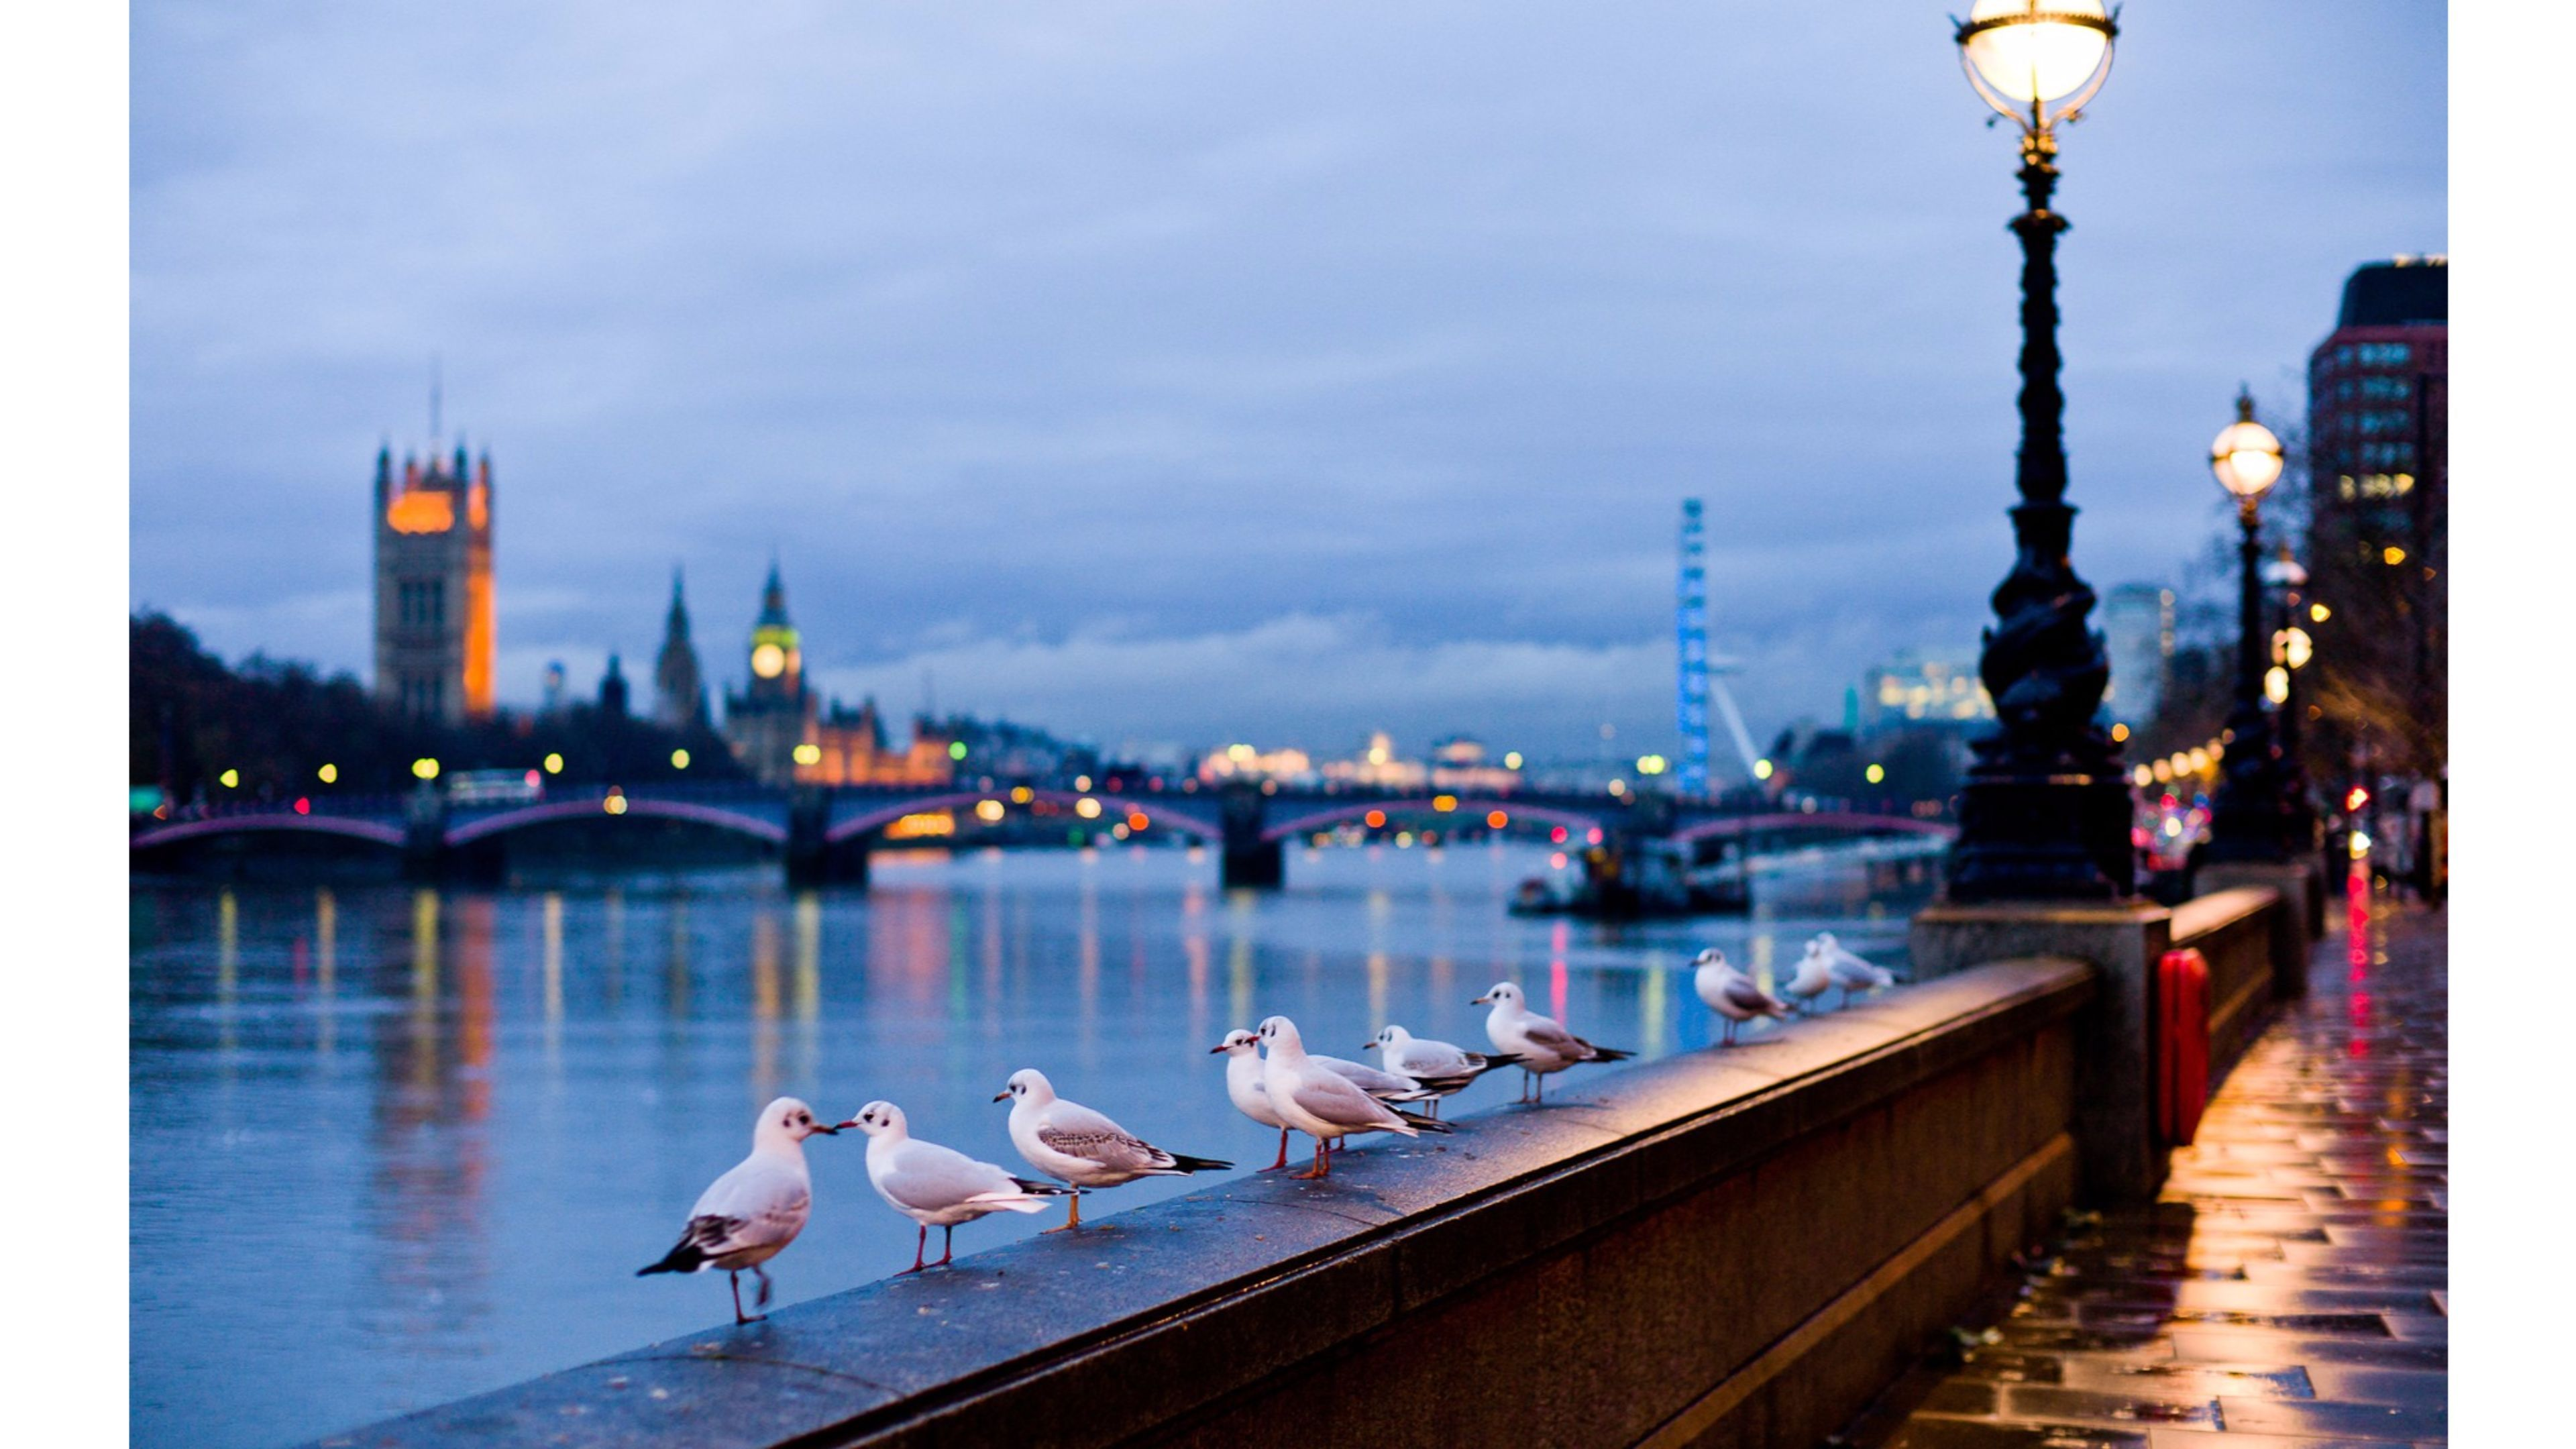 birds love on thames river london hd images